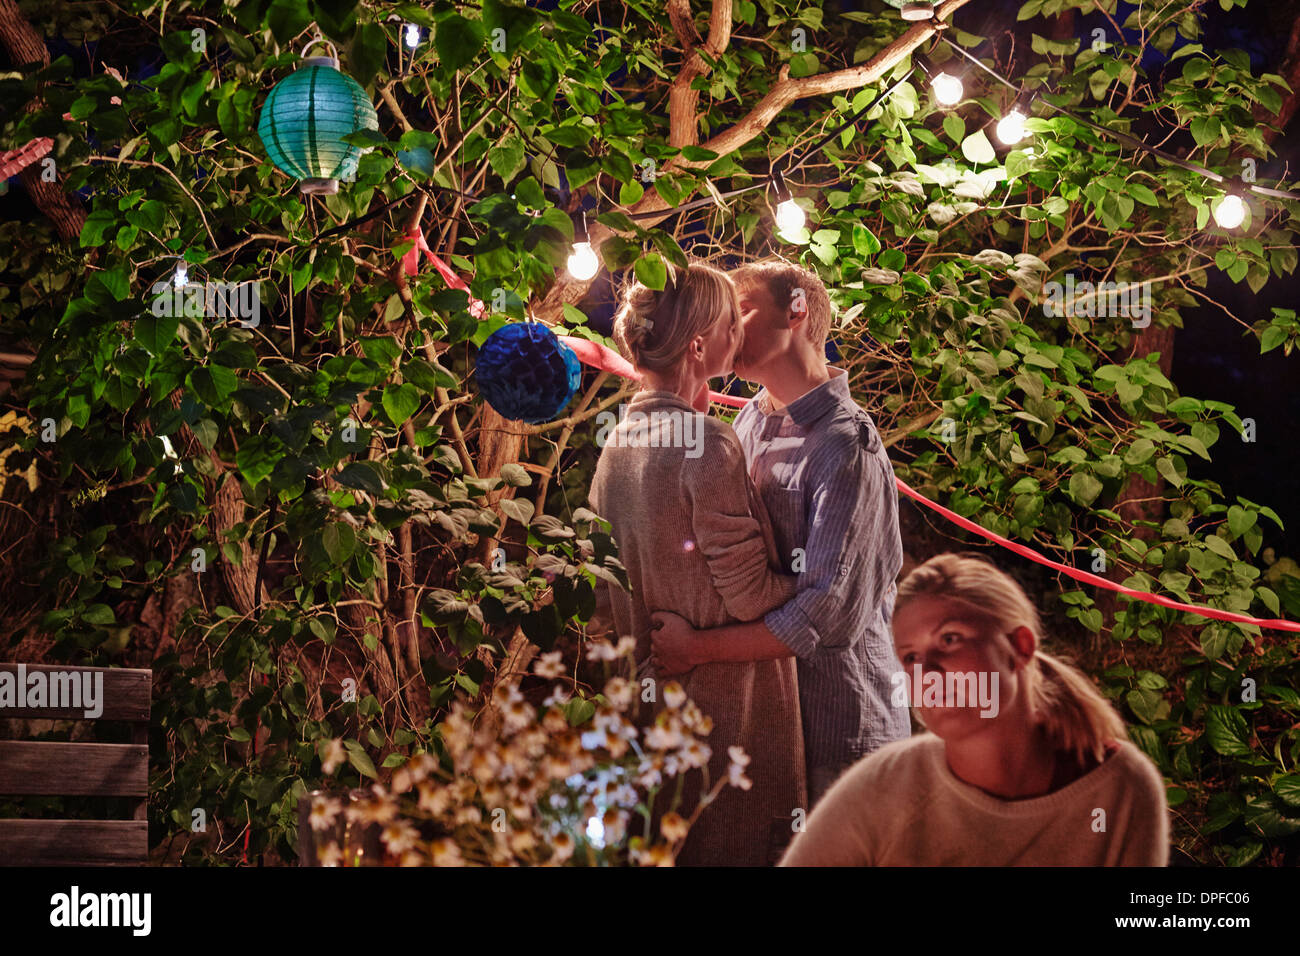 Young couple embracing at garden party at night - Stock Image